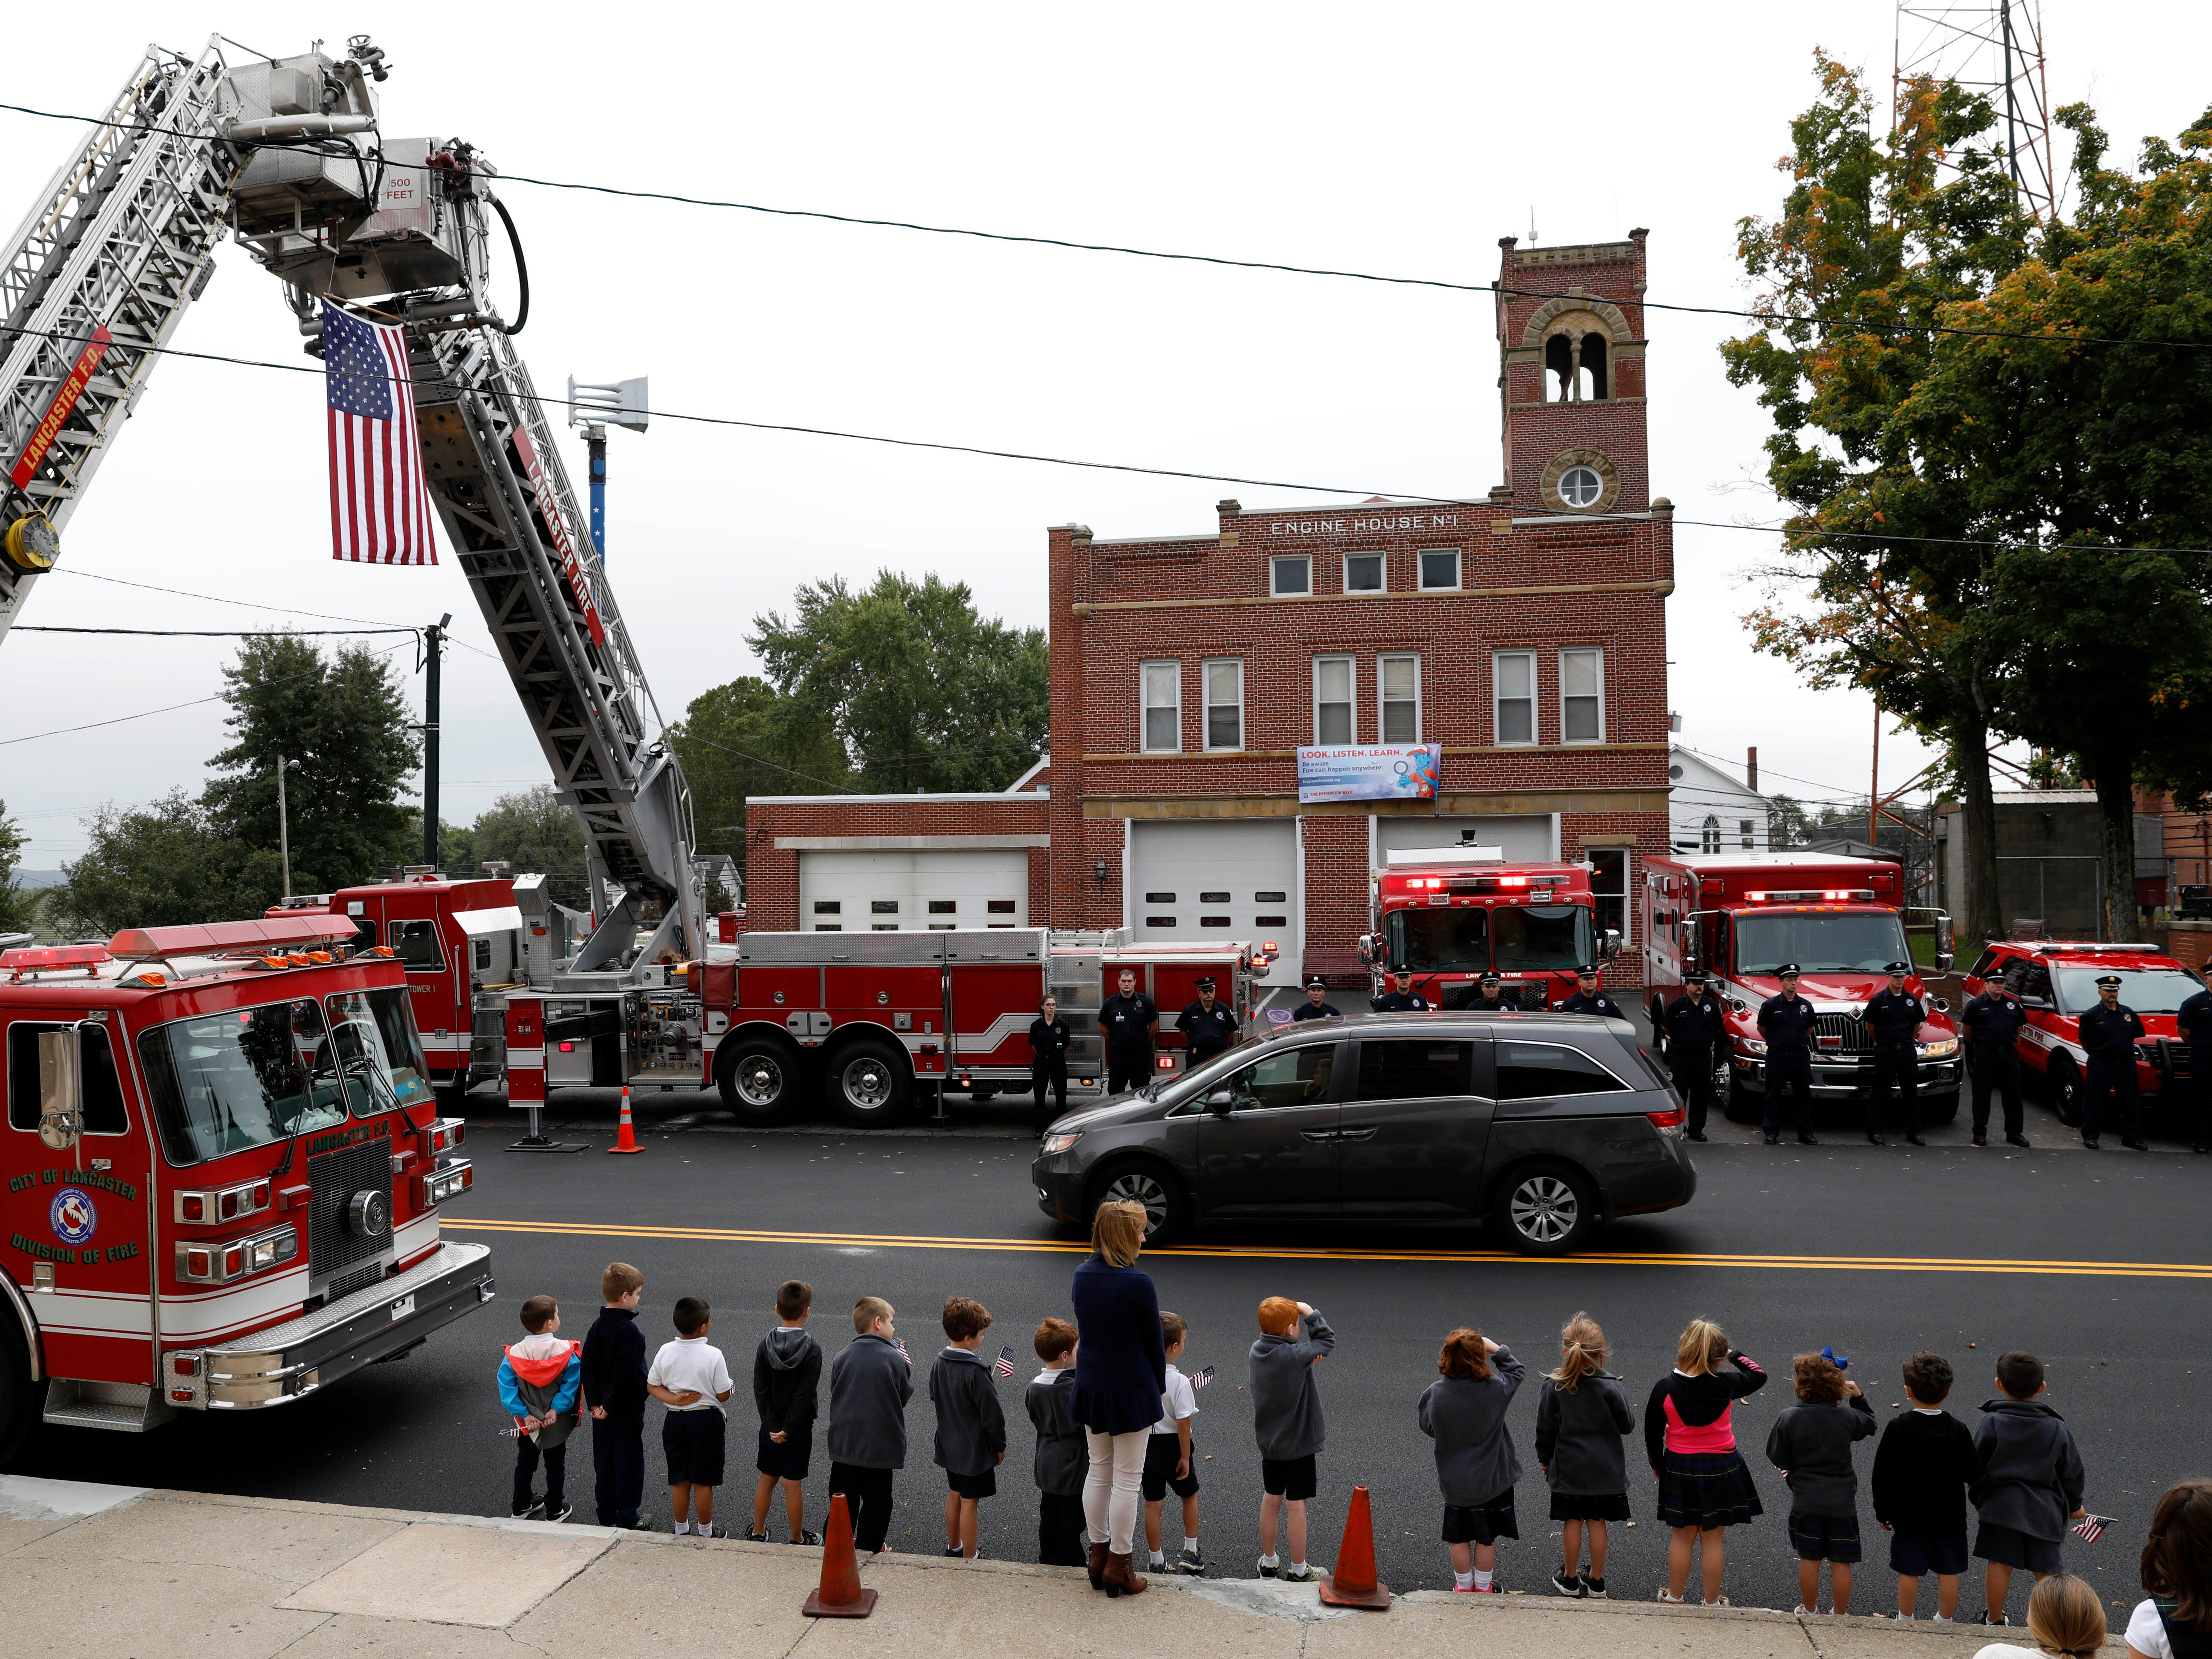 Students from St. Mary School stand on one side of Chestnut Street while Lancaster firefighters stand across from them as the funeral procession for Lancaster Police Lt. Brian Lowe drives down the street Friday, Oct. 5, 2018, in Lancaster. All of the schools students in pre-kindergarten through eighth grade stood outside to honor Lowe who died unexpectedly September 29 while off duty.